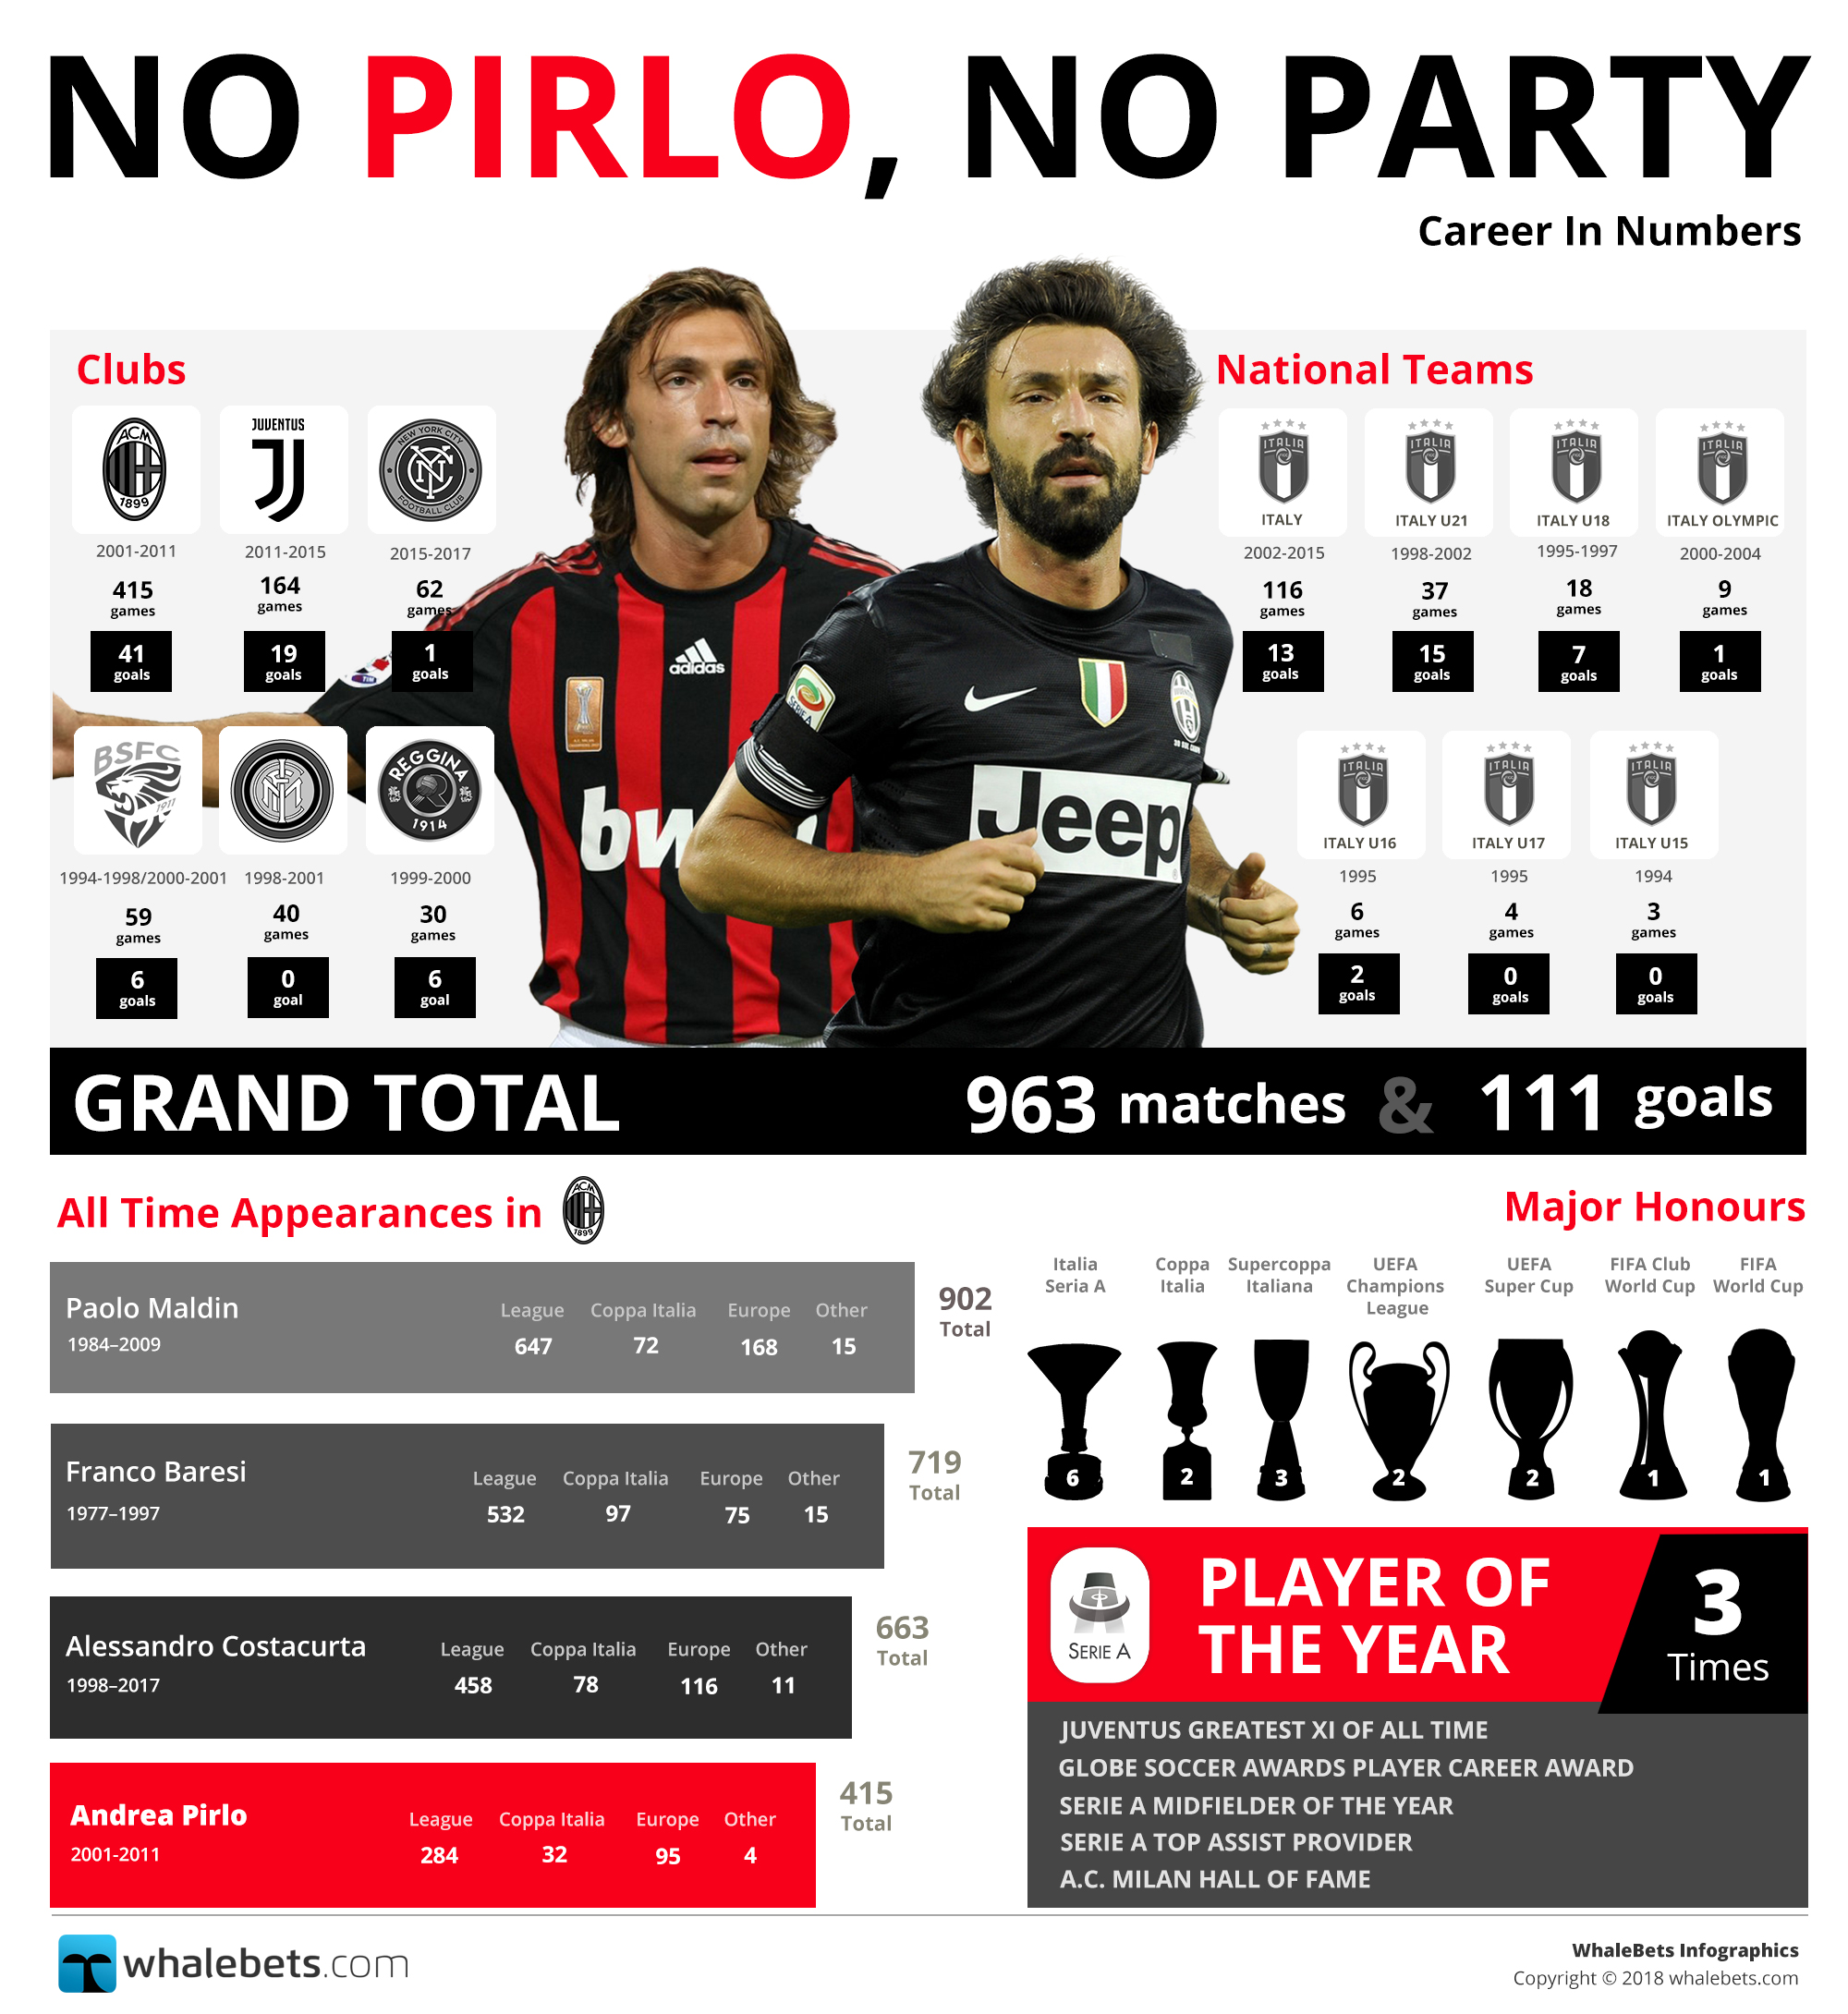 No Pirlo, No Party Infographic